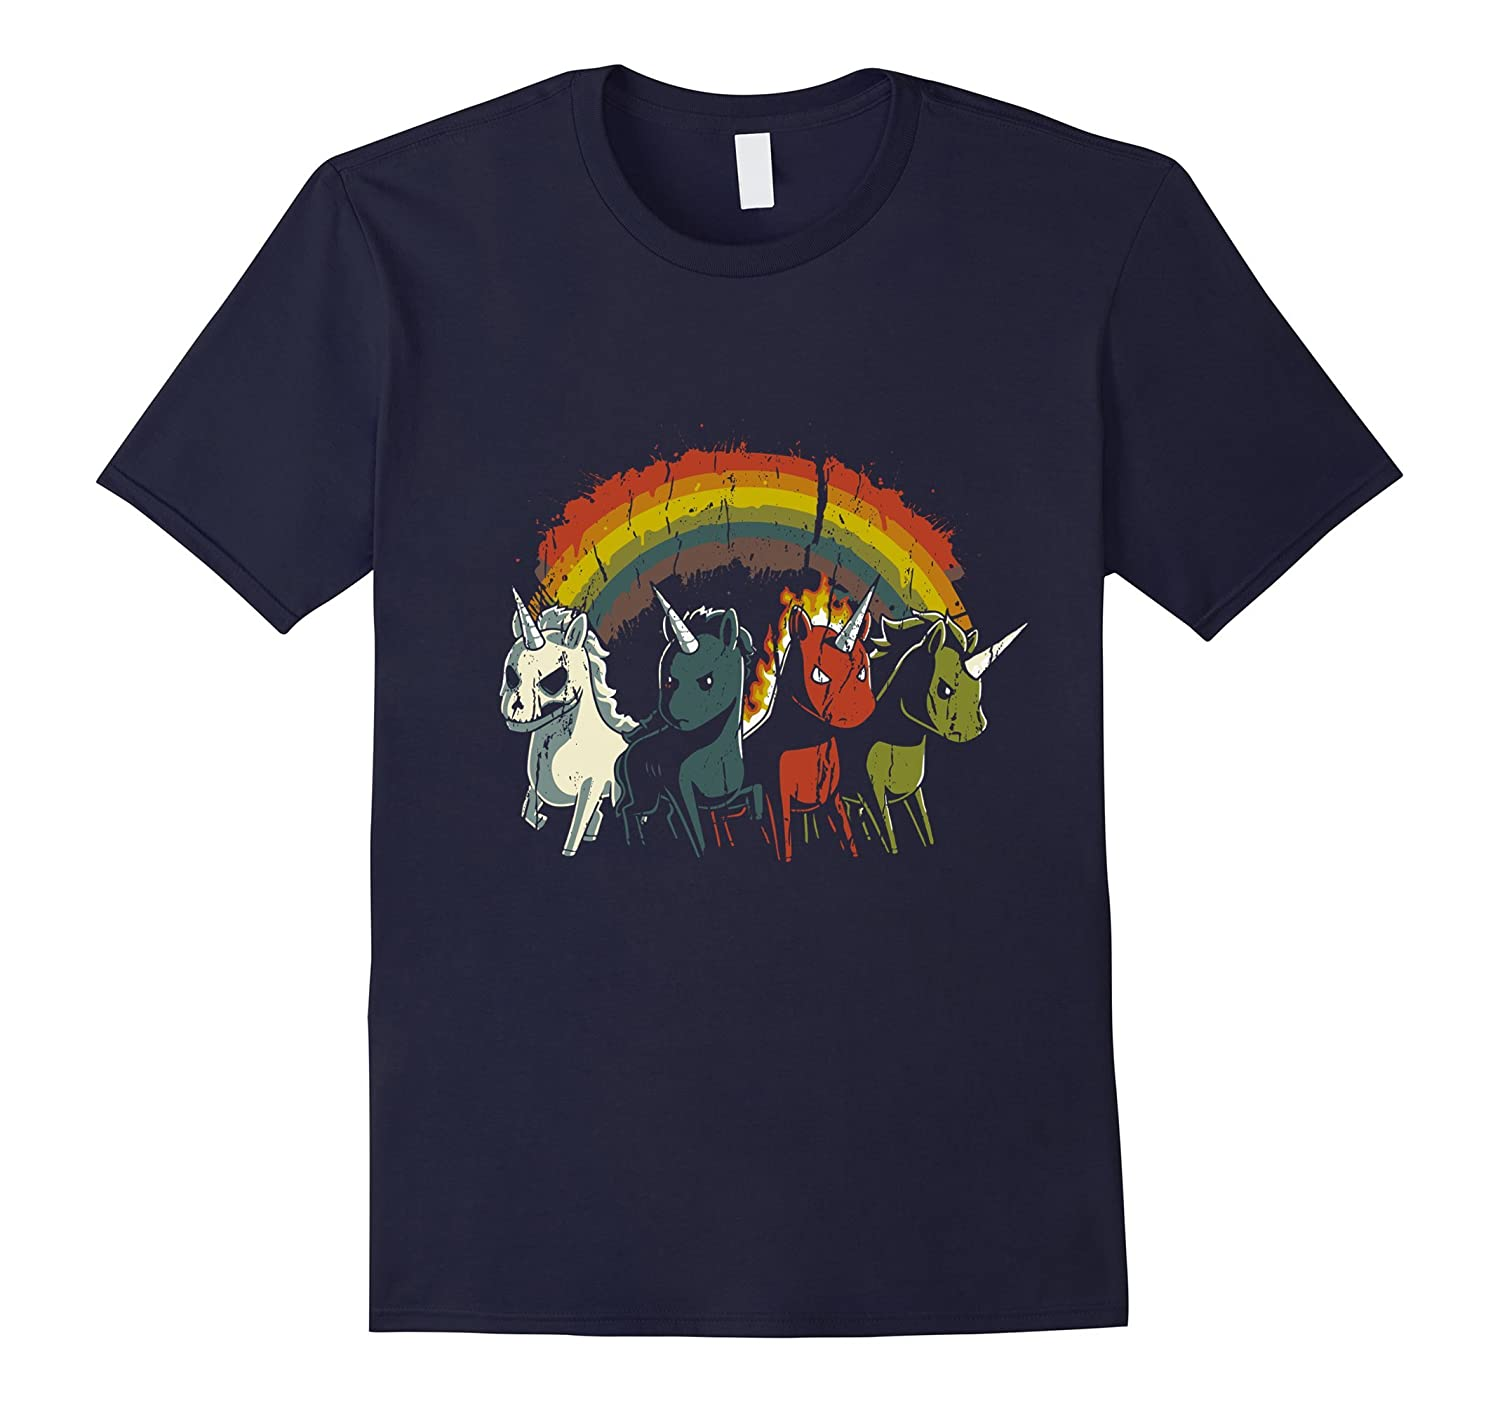 Four Unicorns Of The Apocalypse T-shirt Evil Zombie, Rainbow-TH